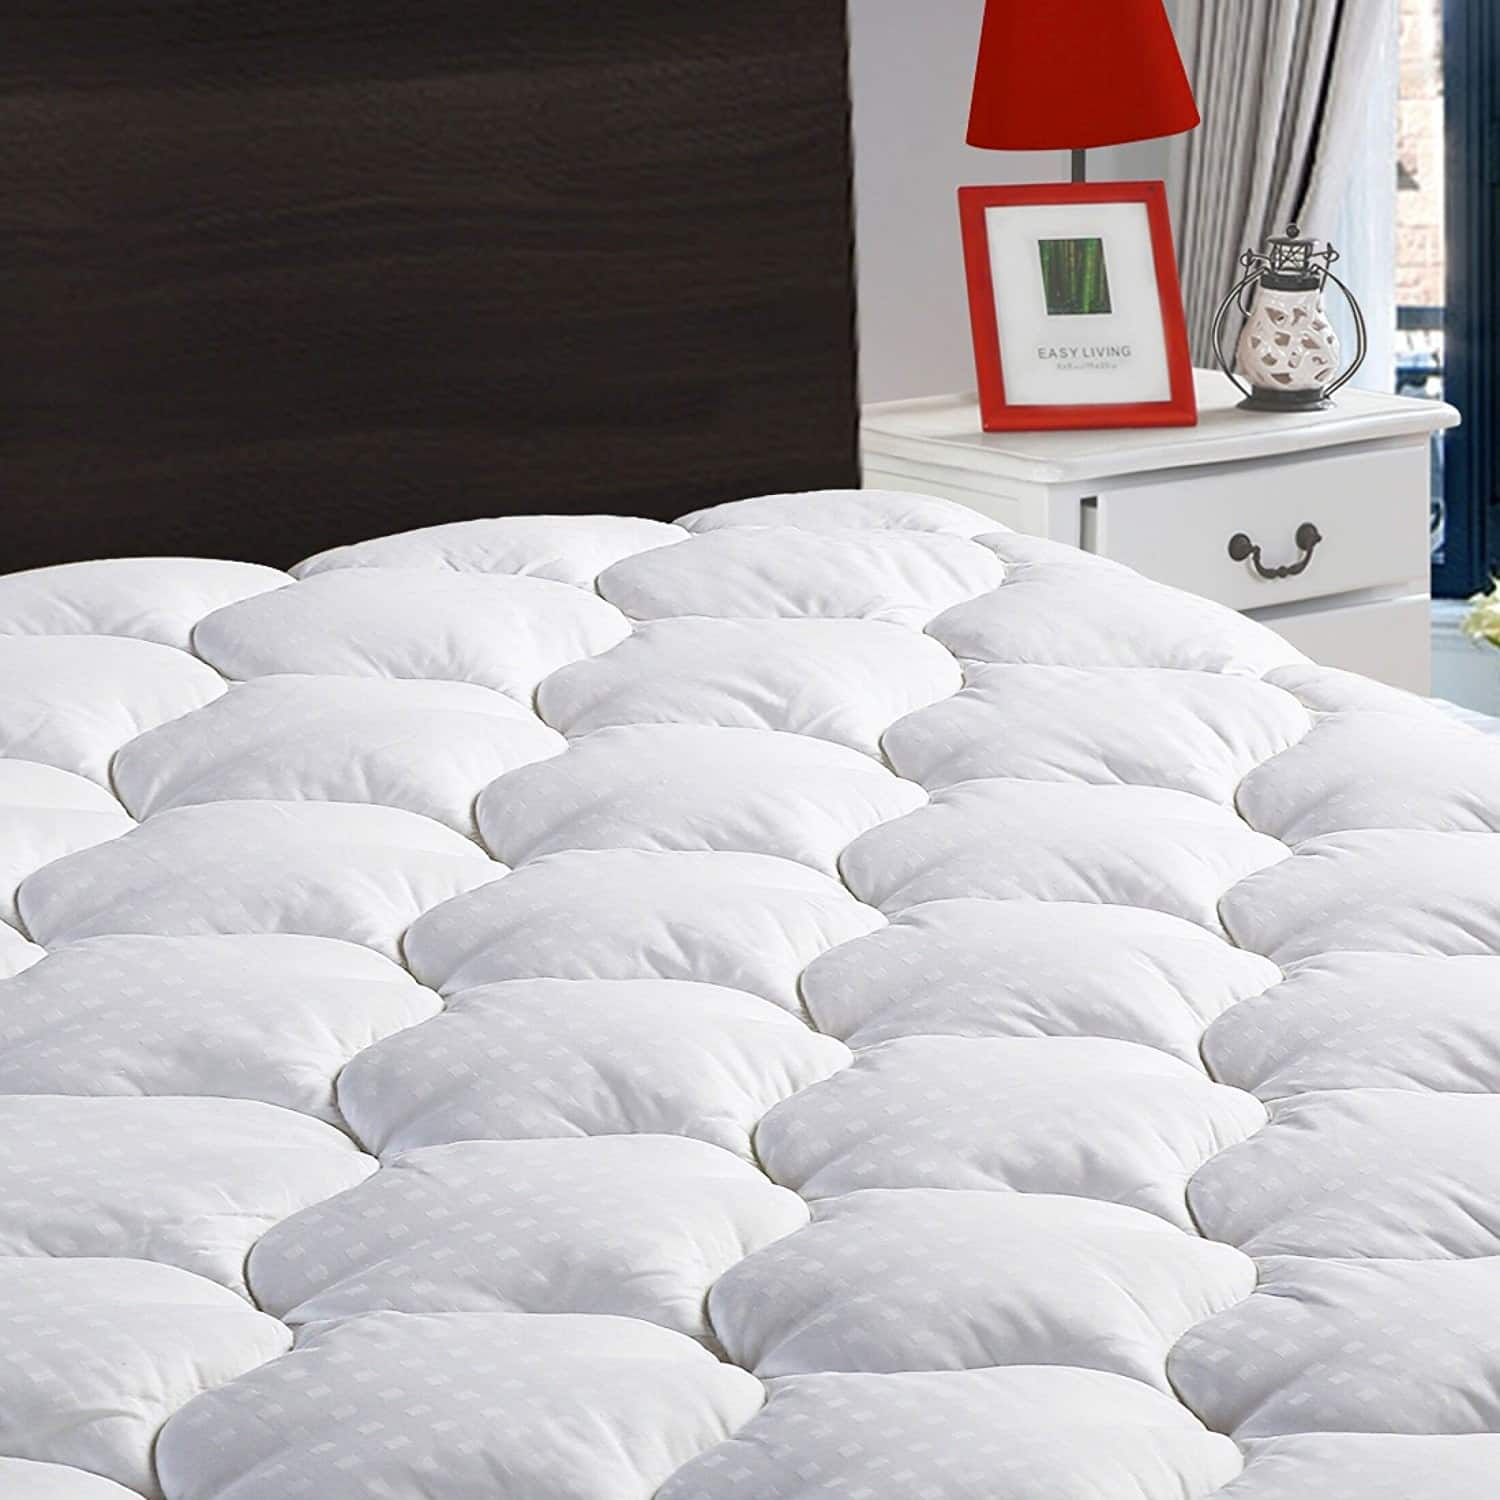 Twin Xl Overfilled Mattress Pad Cover Topper 8 21 Deep Pocket Down